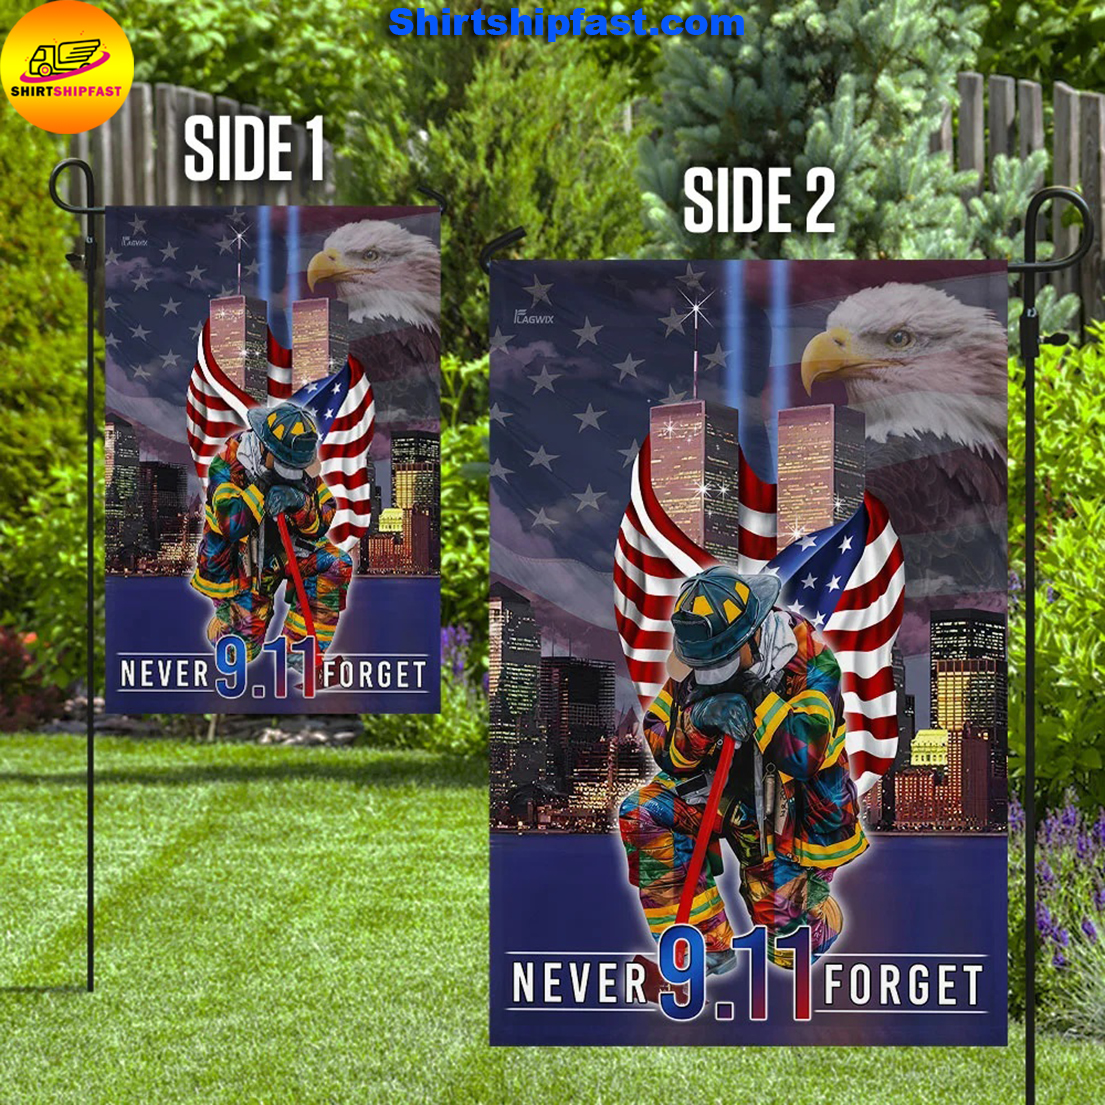 Never forget September 11th American flag - Picture 1